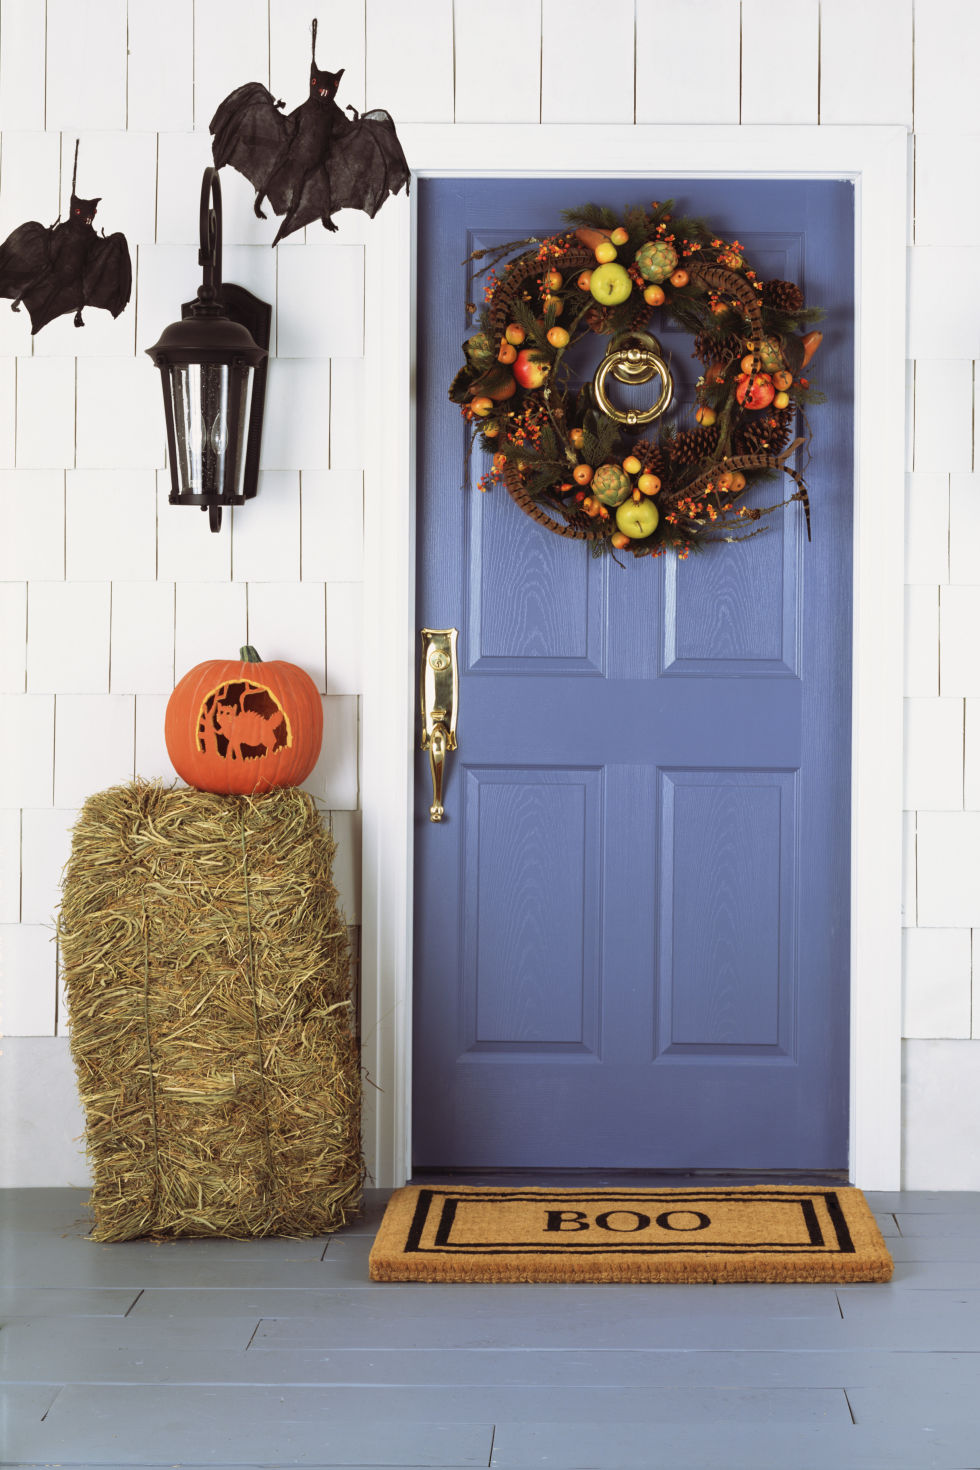 Get Inspired By These Spooktacular Halloween Decorations 1